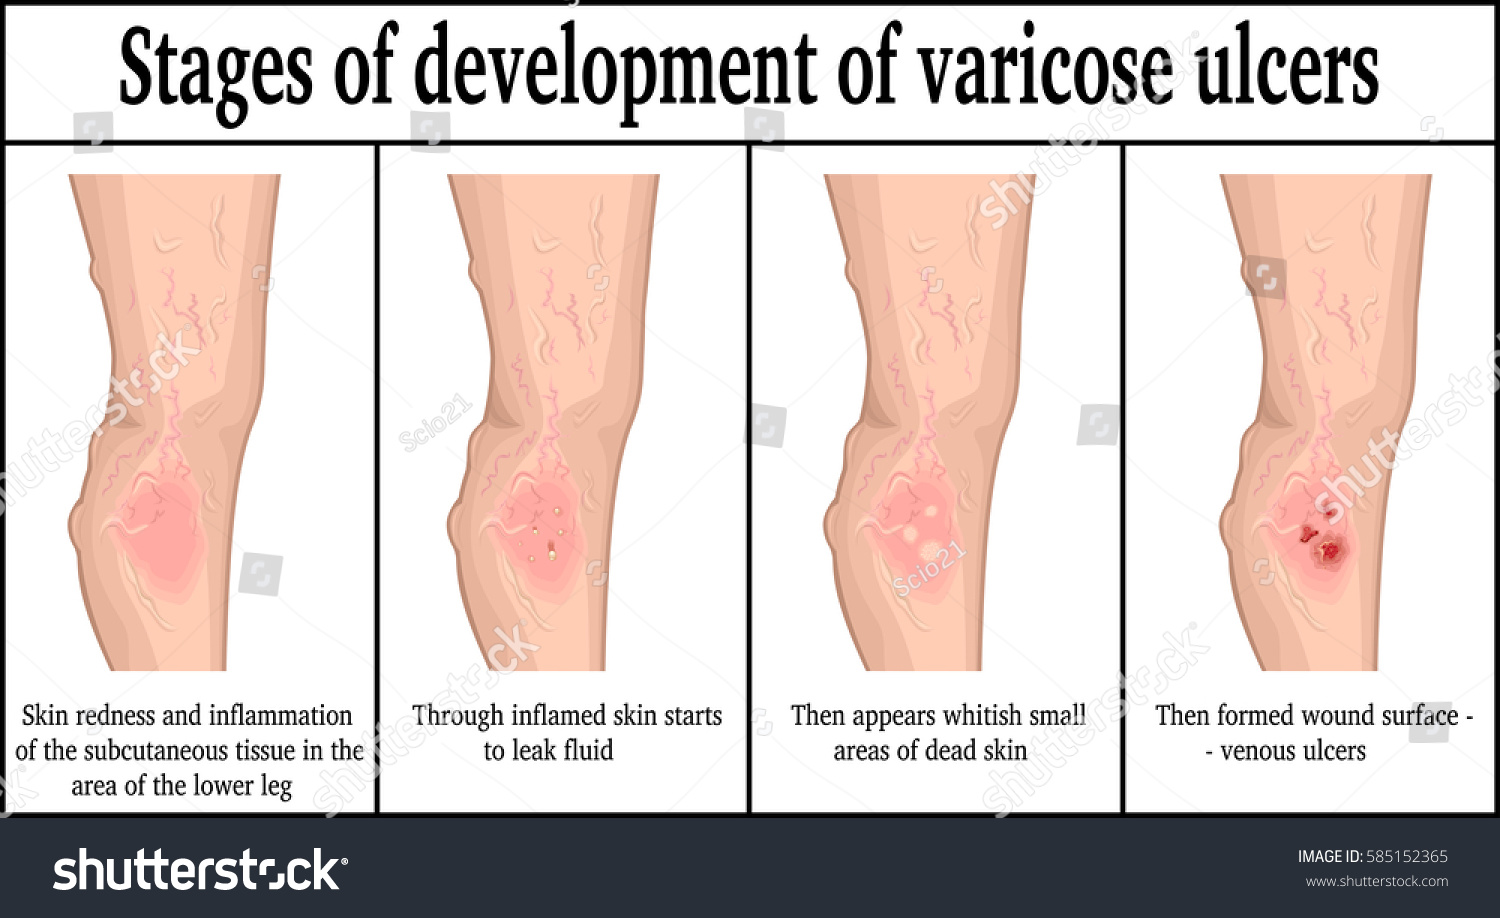 hight resolution of four stages of development of varicose ulcers on the lower leg